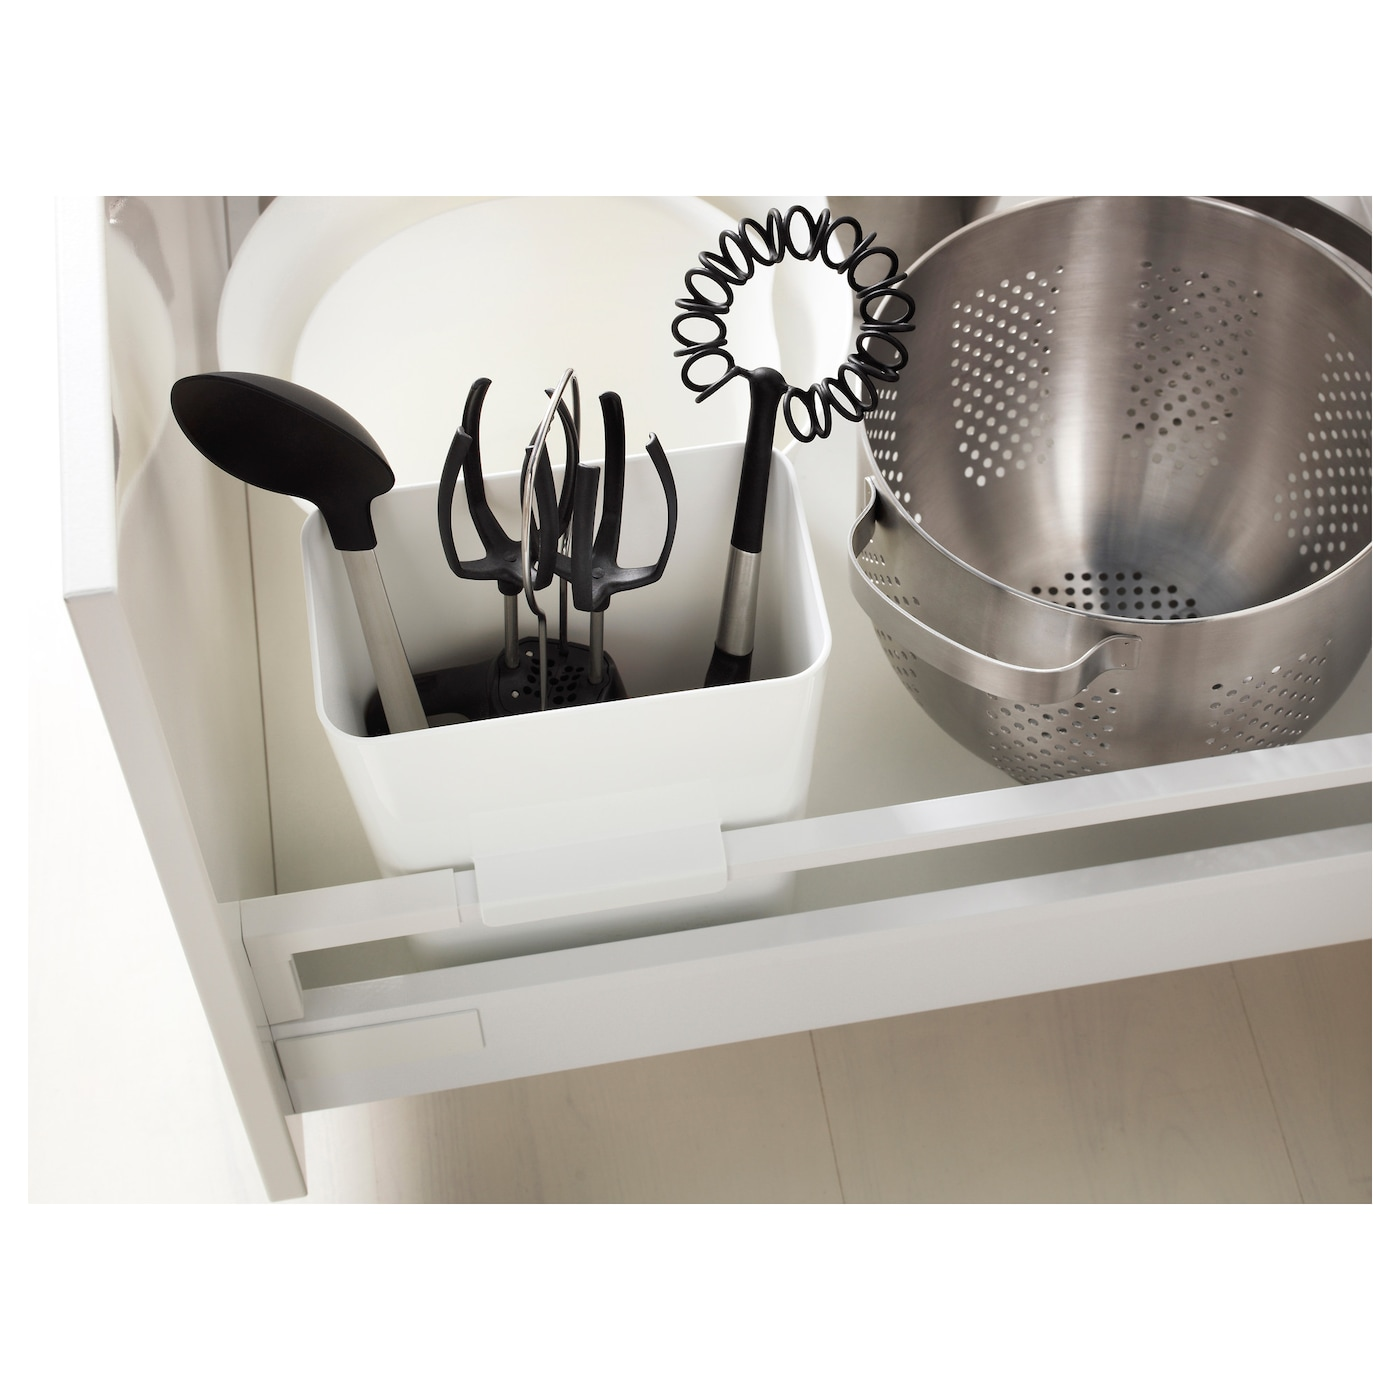 IKEA VARIERA Kitchen Utensil Rack Easy To Use By Hanging On The Side Of The  Drawer